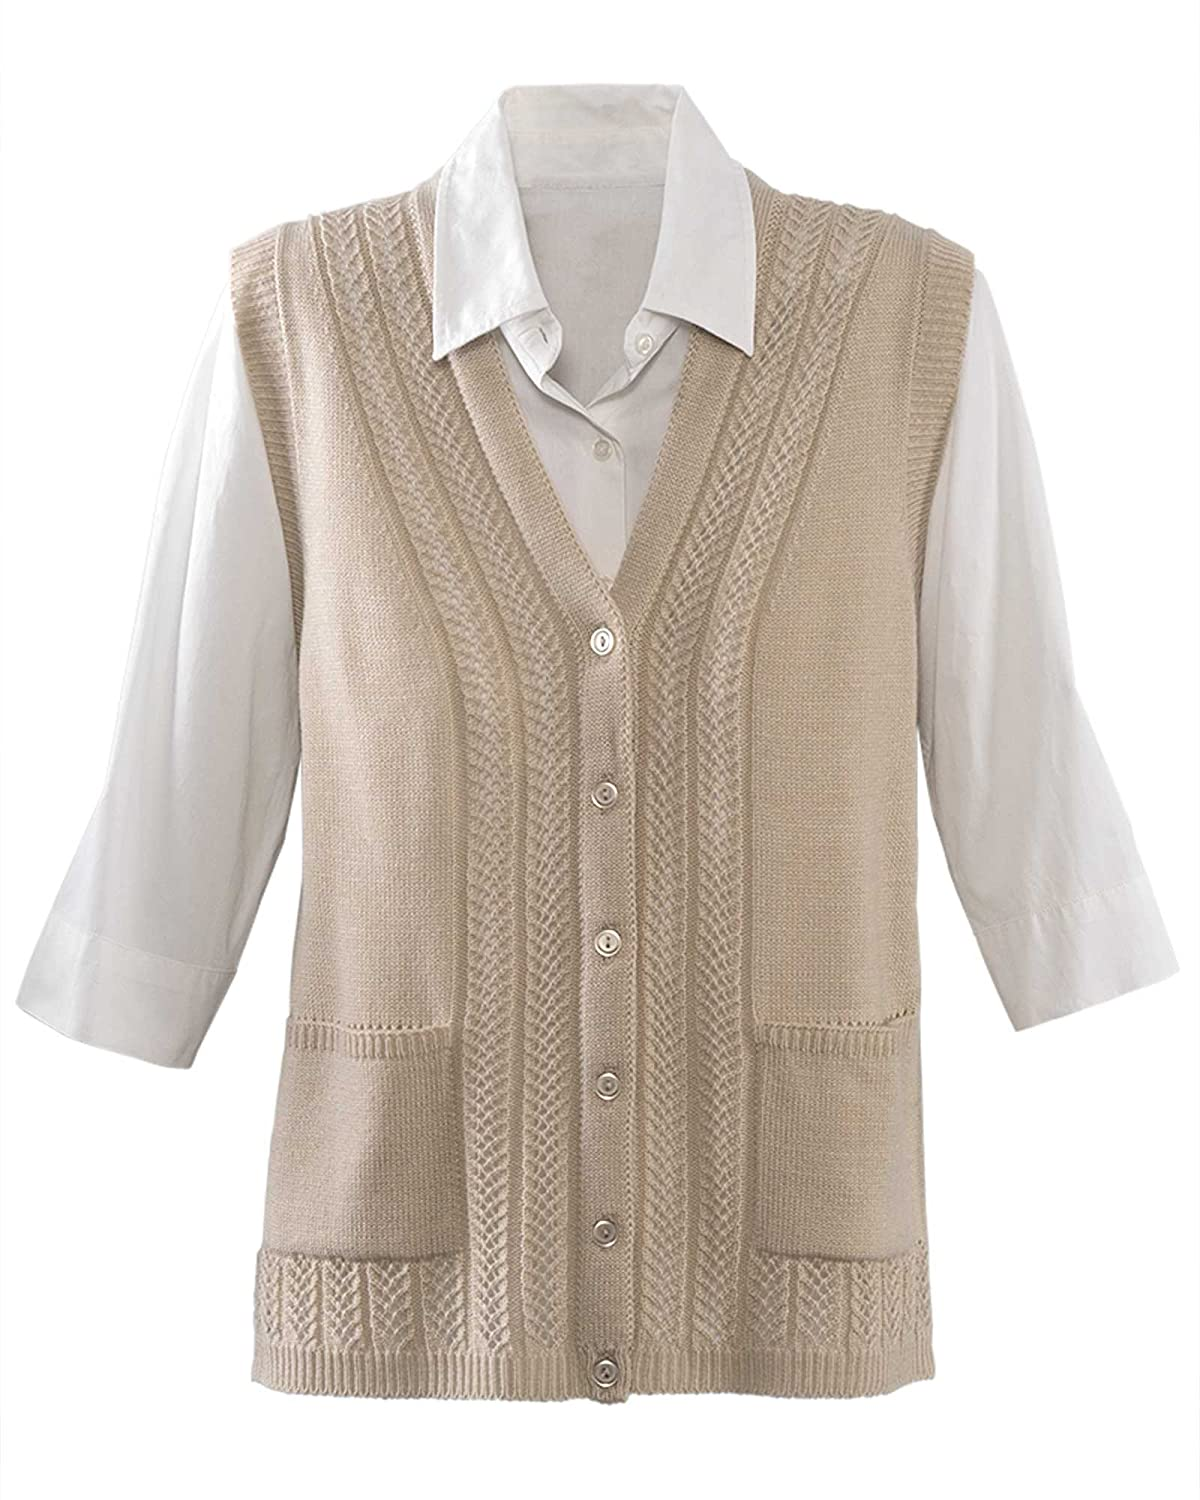 1950s Sweaters, 50s Cardigans, 50s Jumpers National Classic Sweater Vest $34.95 AT vintagedancer.com